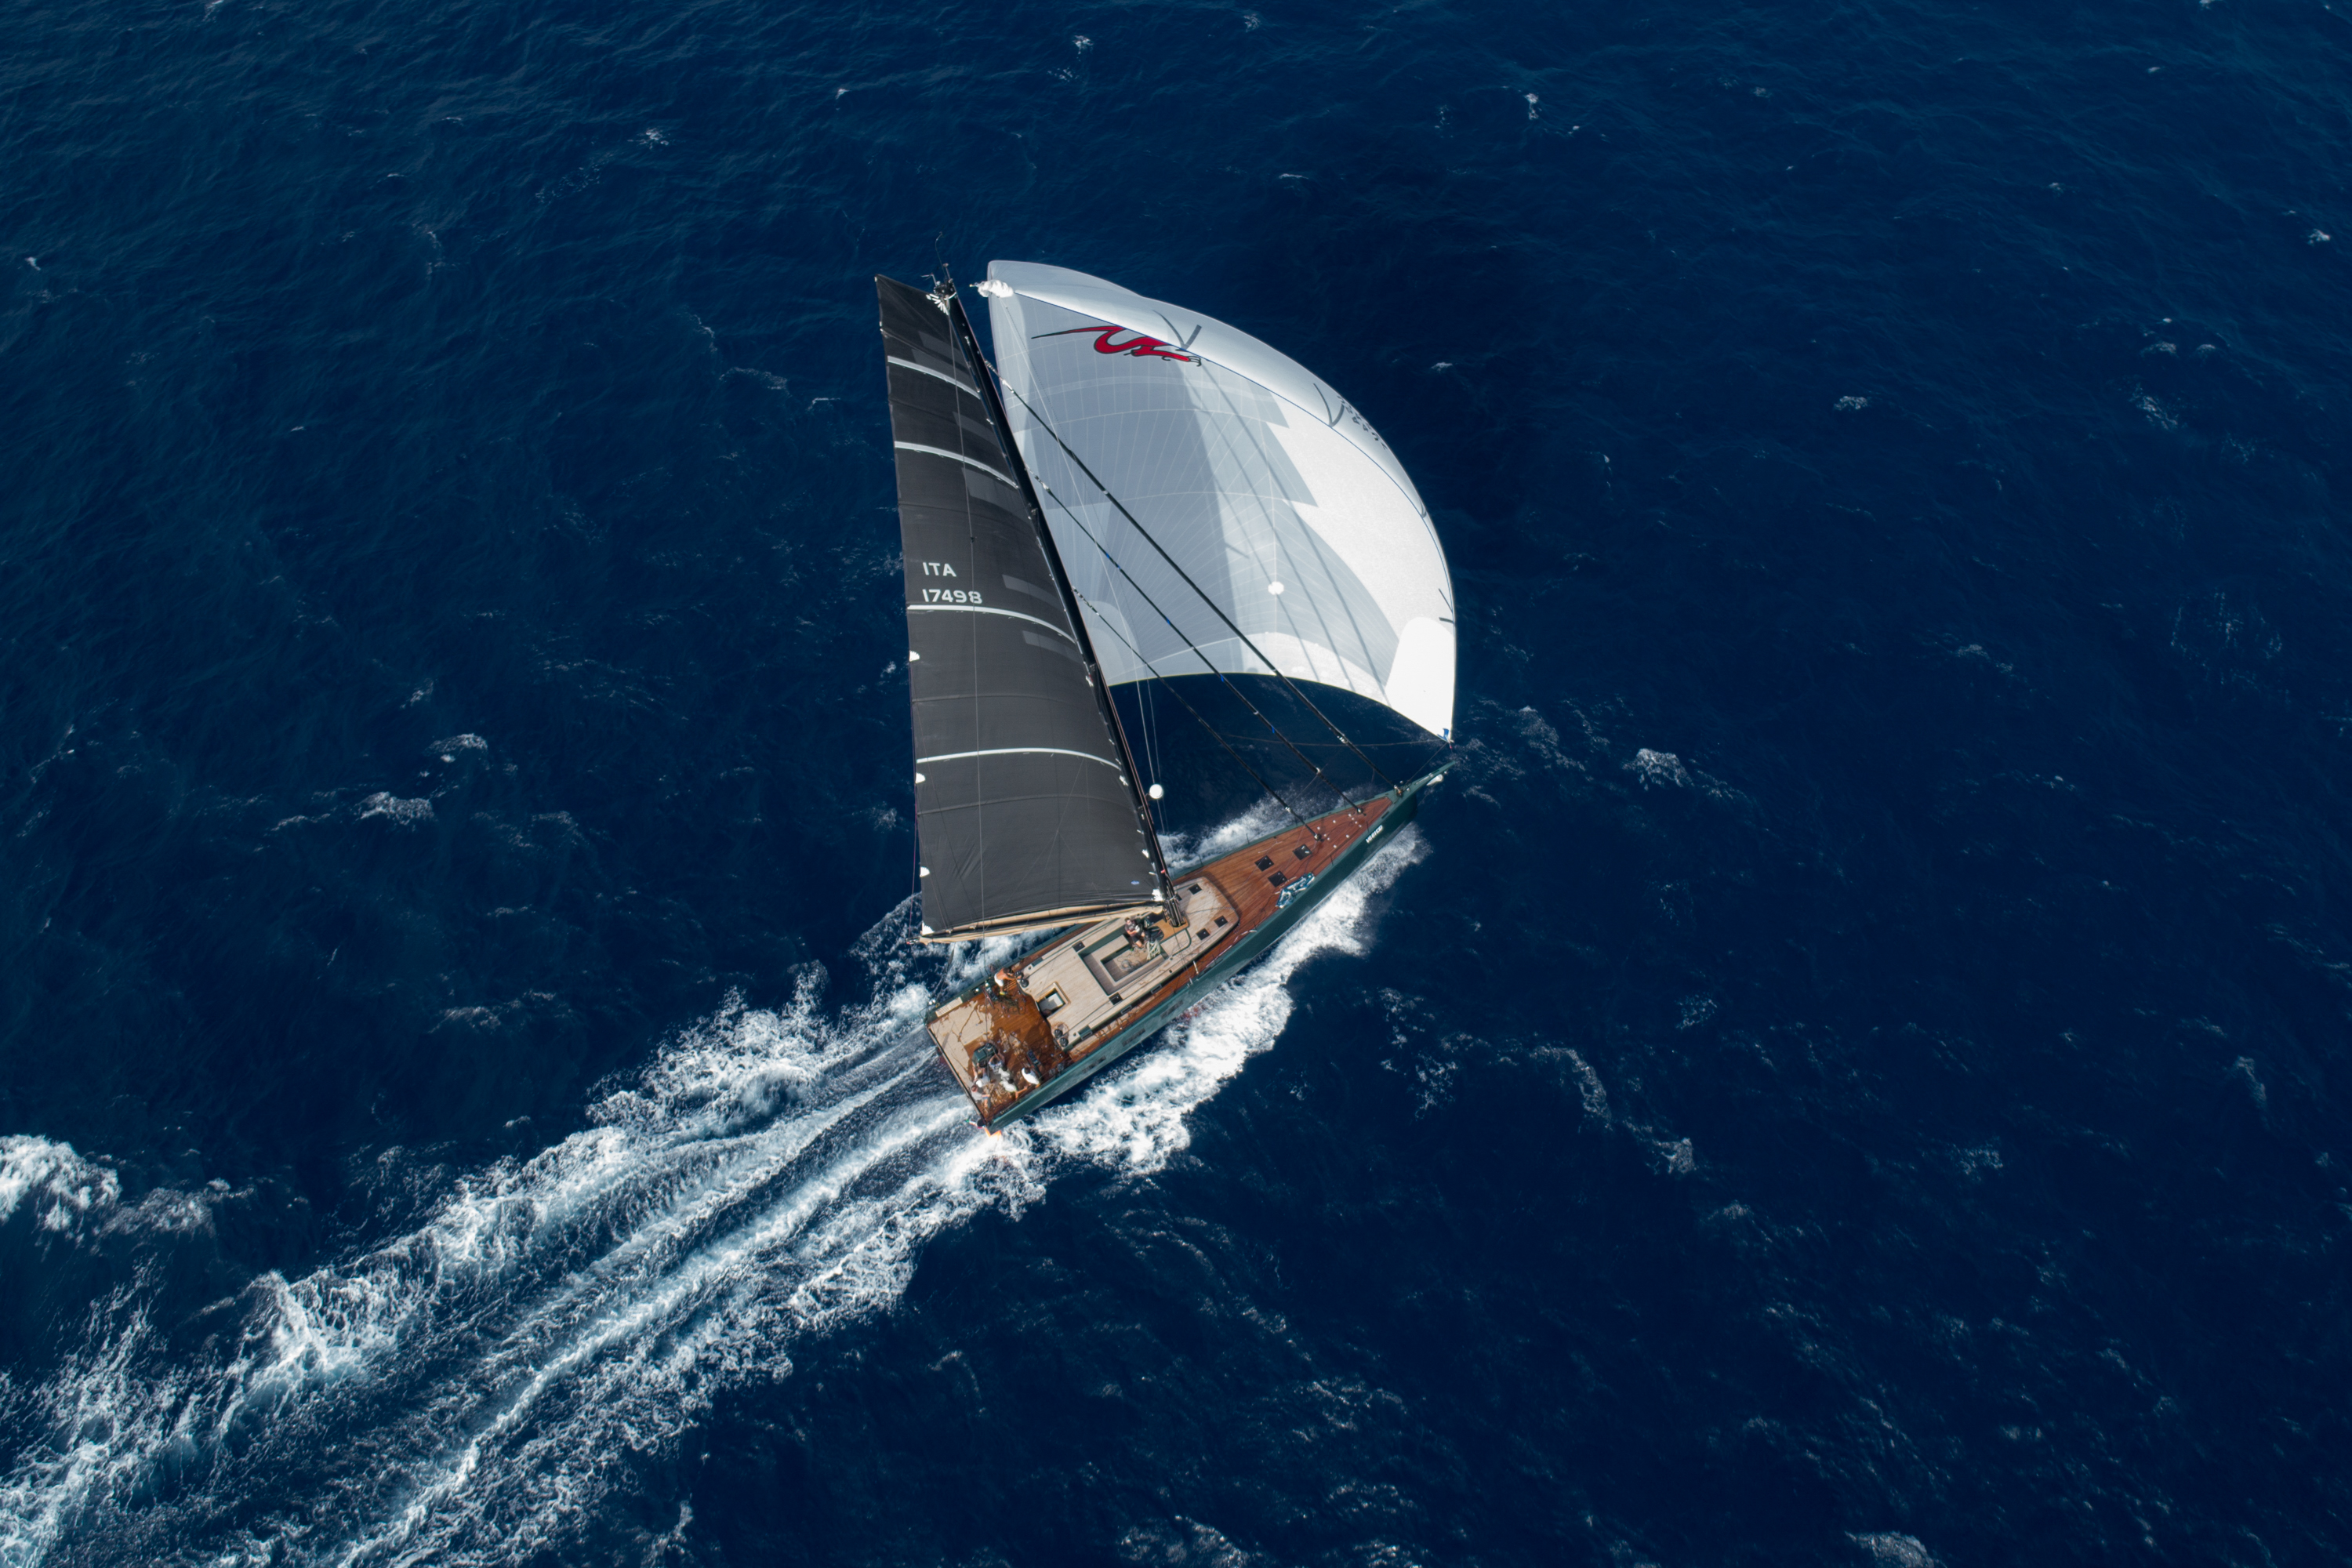 Sailing photography by Maxime Horlaville - MxHpics